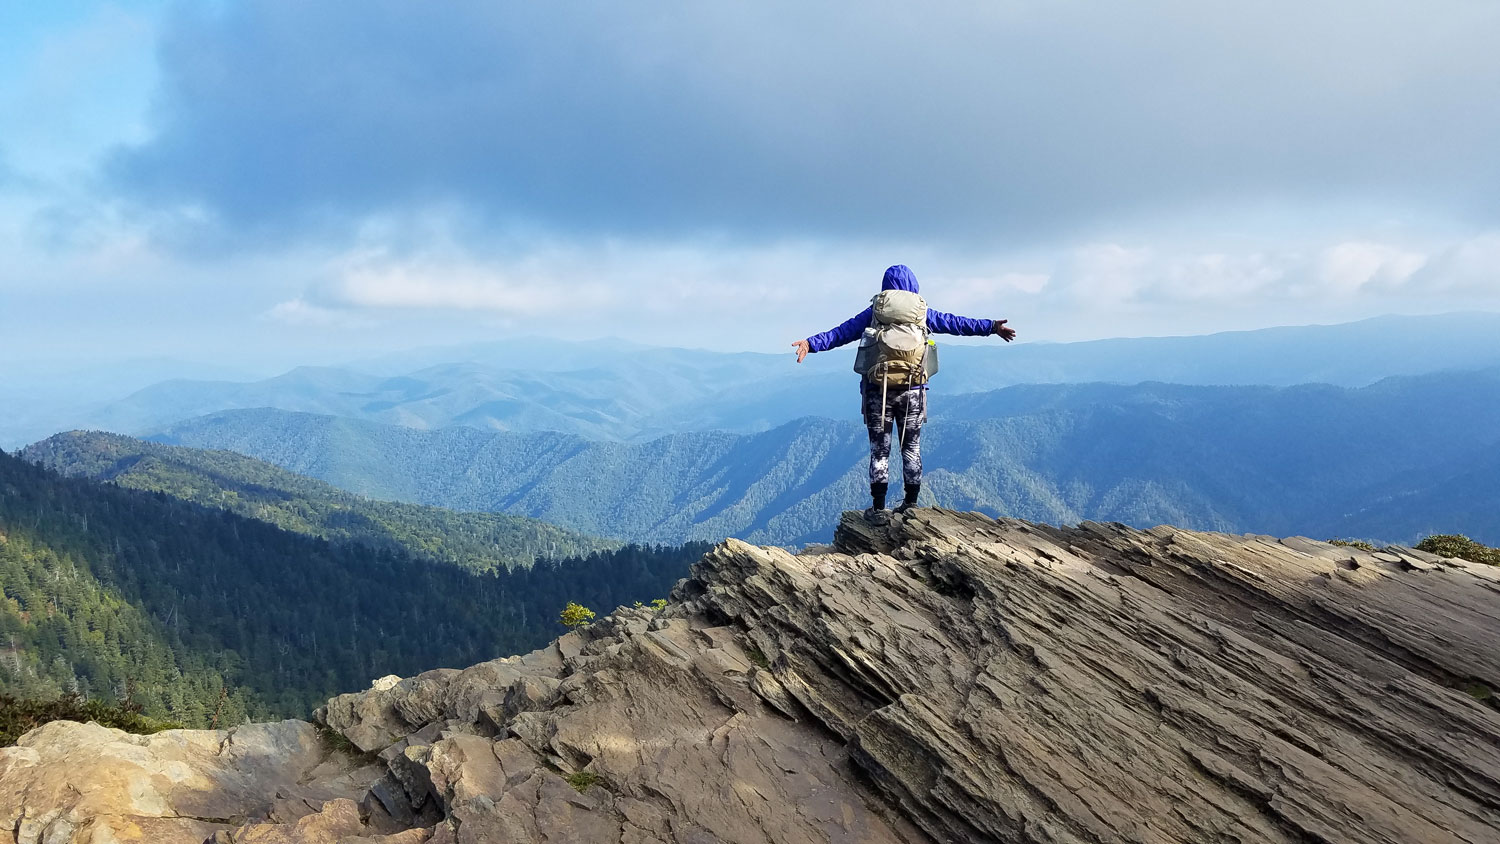 Exploring The Benefits Of Life Outdoors